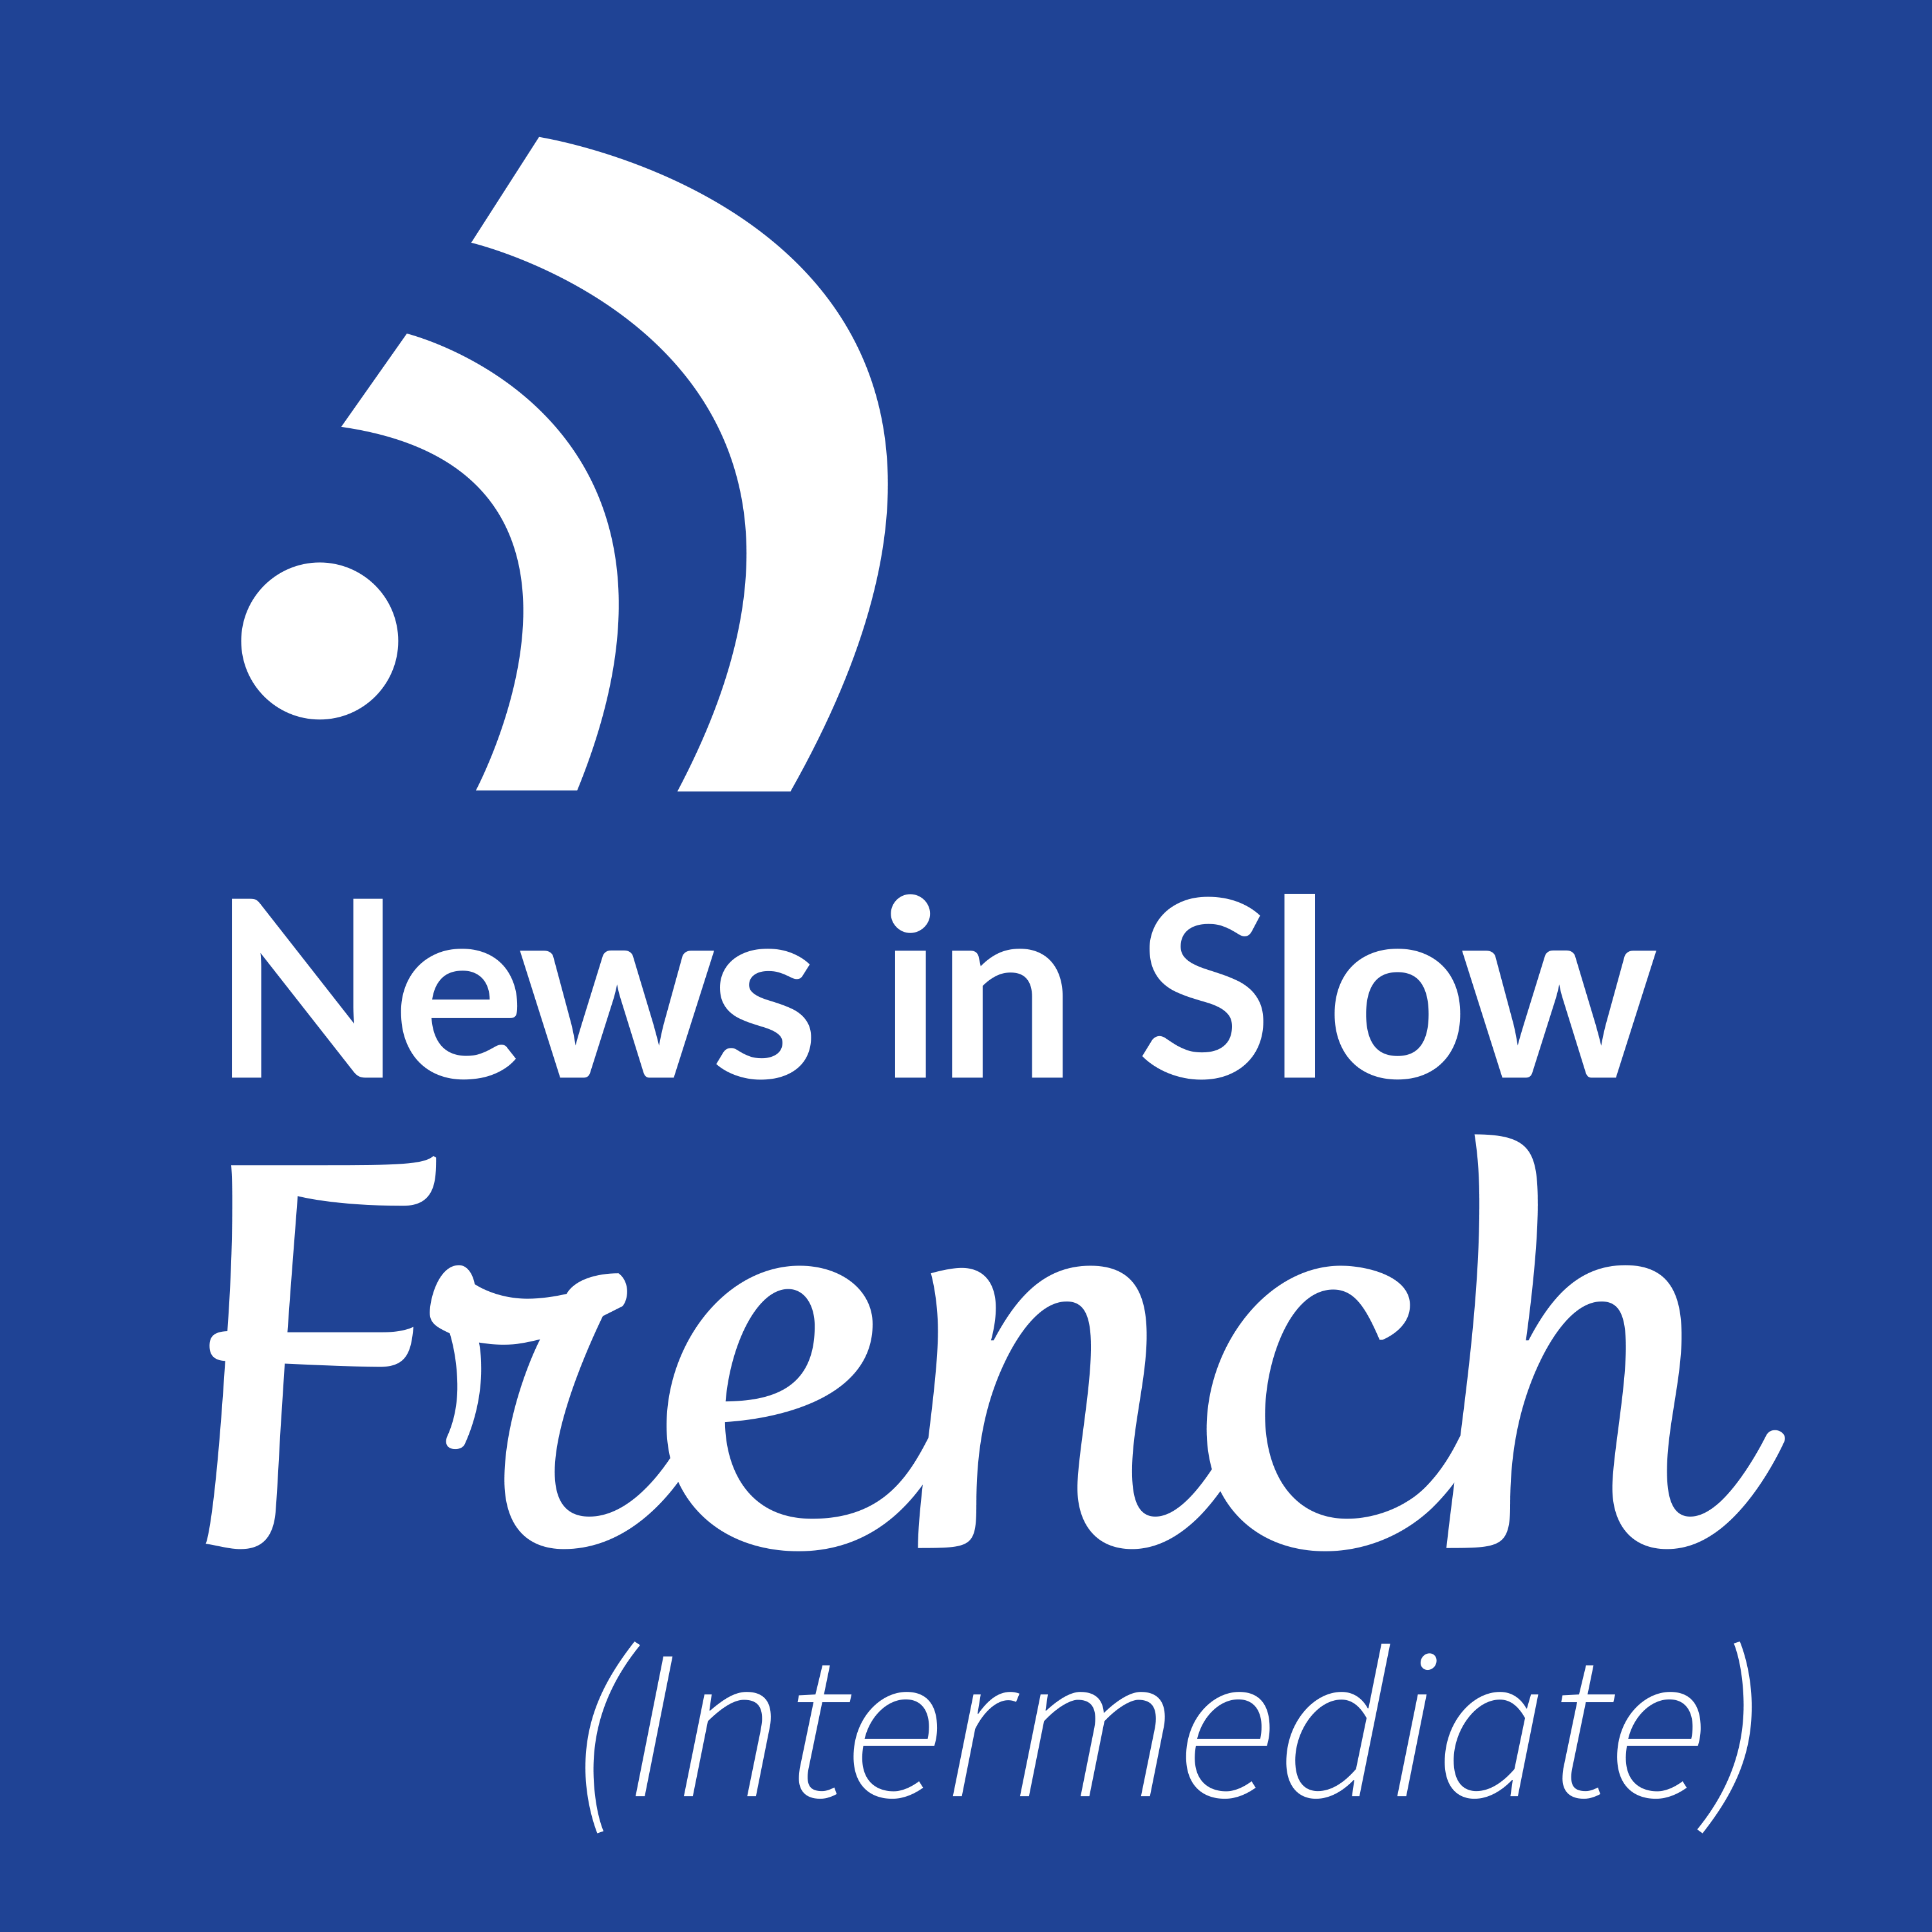 News in Slow French #307 - French news, grammar and idiomatic expressions